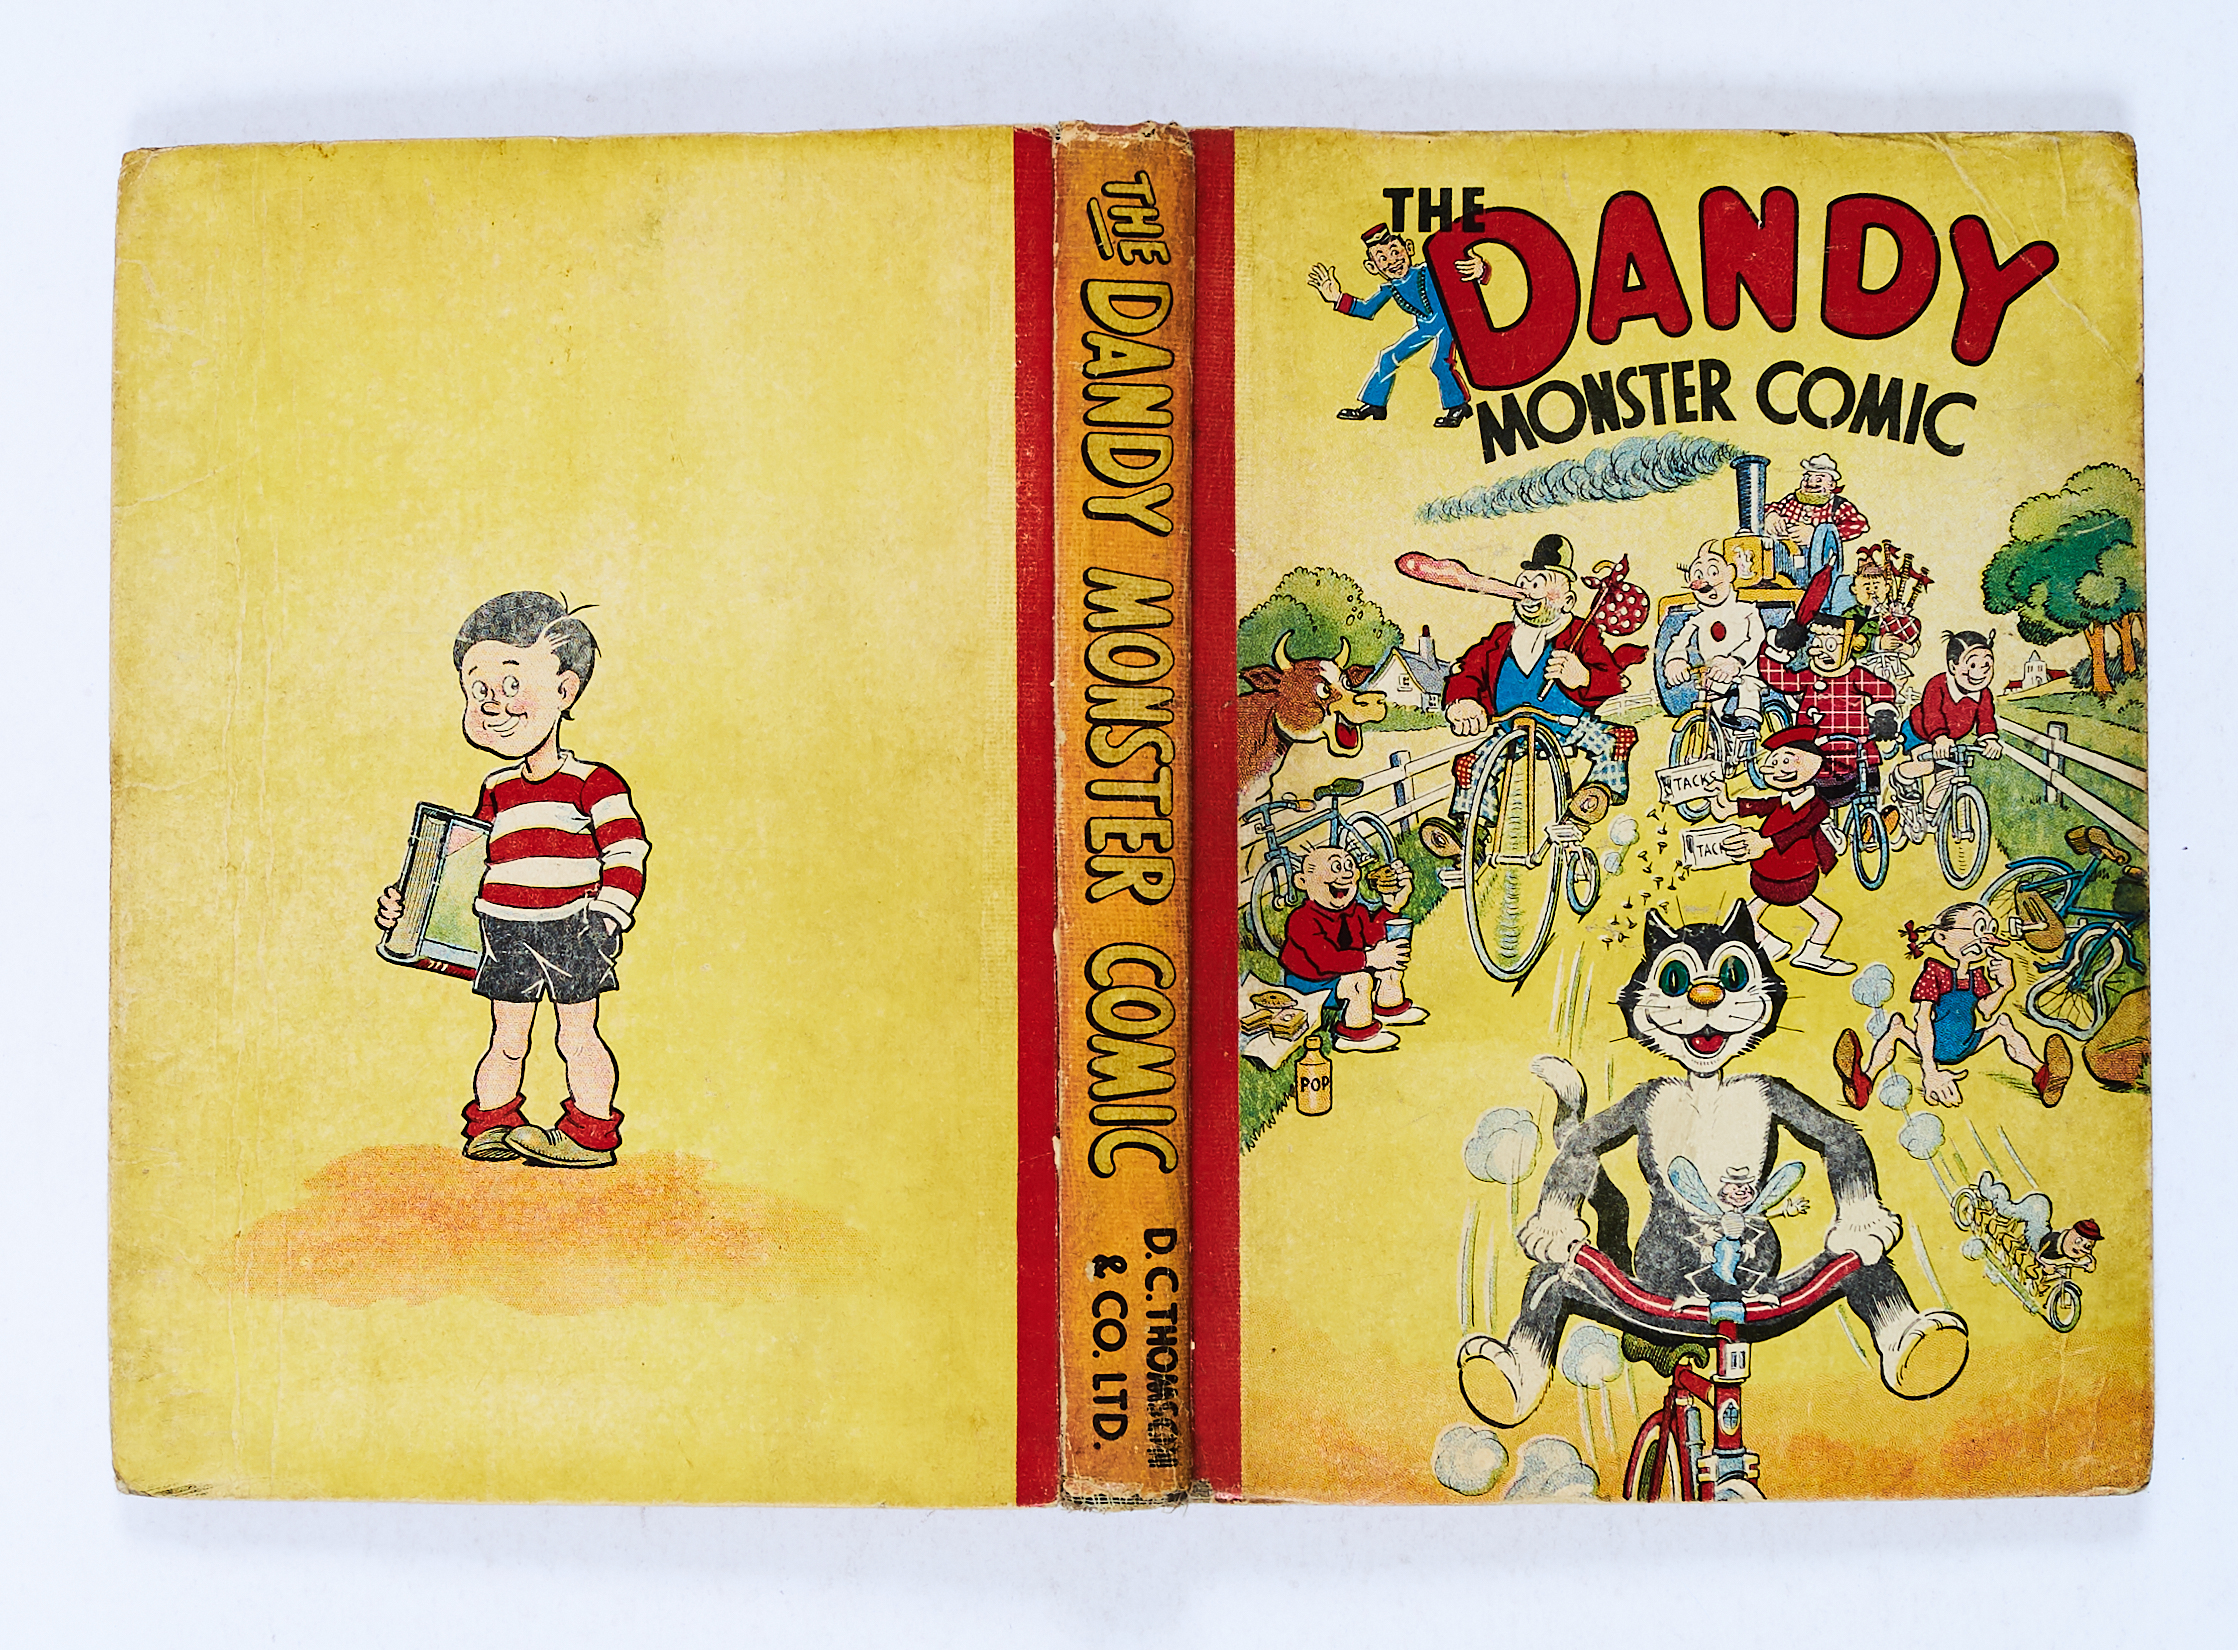 Lot 21 - Dandy Monster Comic (1943). Korky's Bicycle Race. Some wear to boards with sunned spine, no